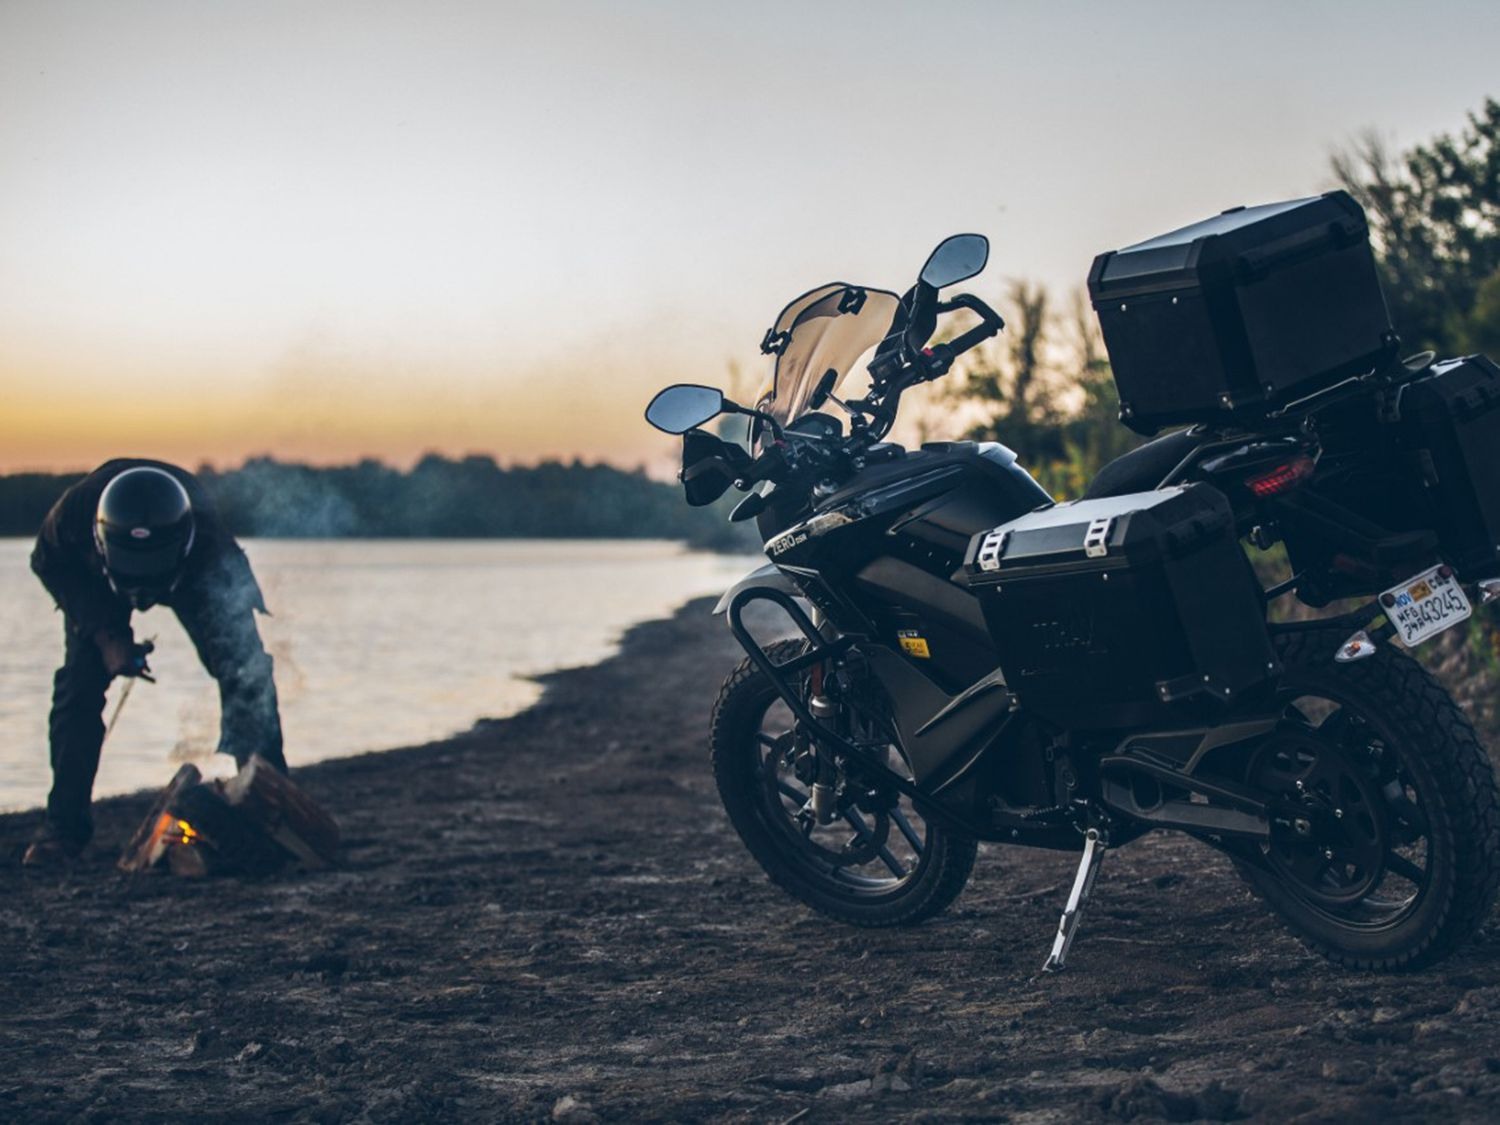 Take a good long look at the 2020 Zero DSR Black Forest. It started as a simple electric dual sport motorcycle and has evolved into a nice, lightweight adventure bike.